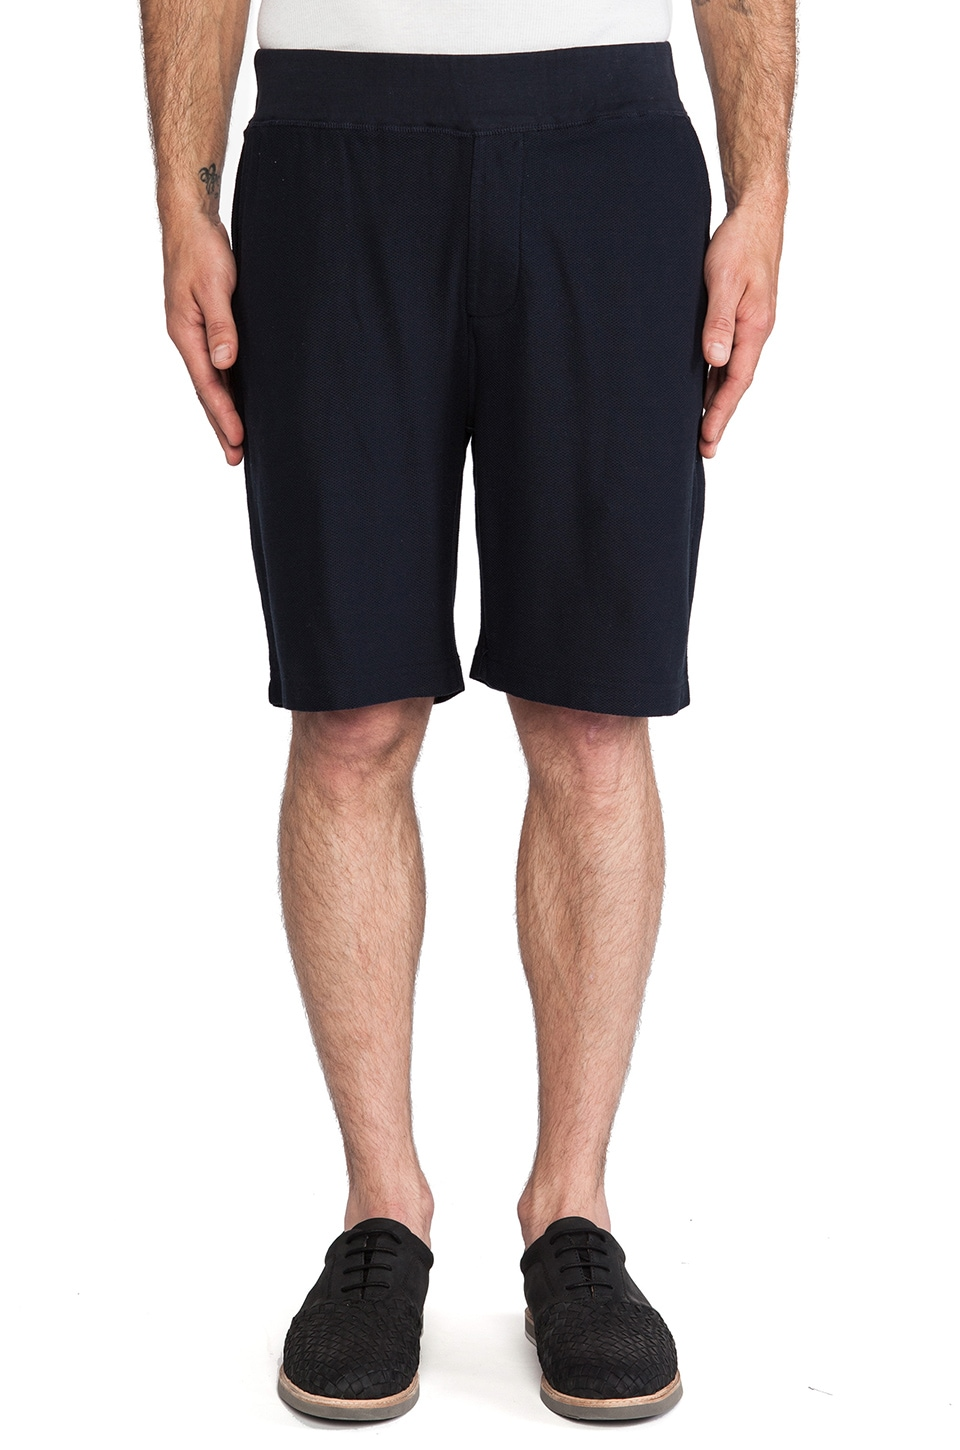 Our Legacy Great Shorts in Navy